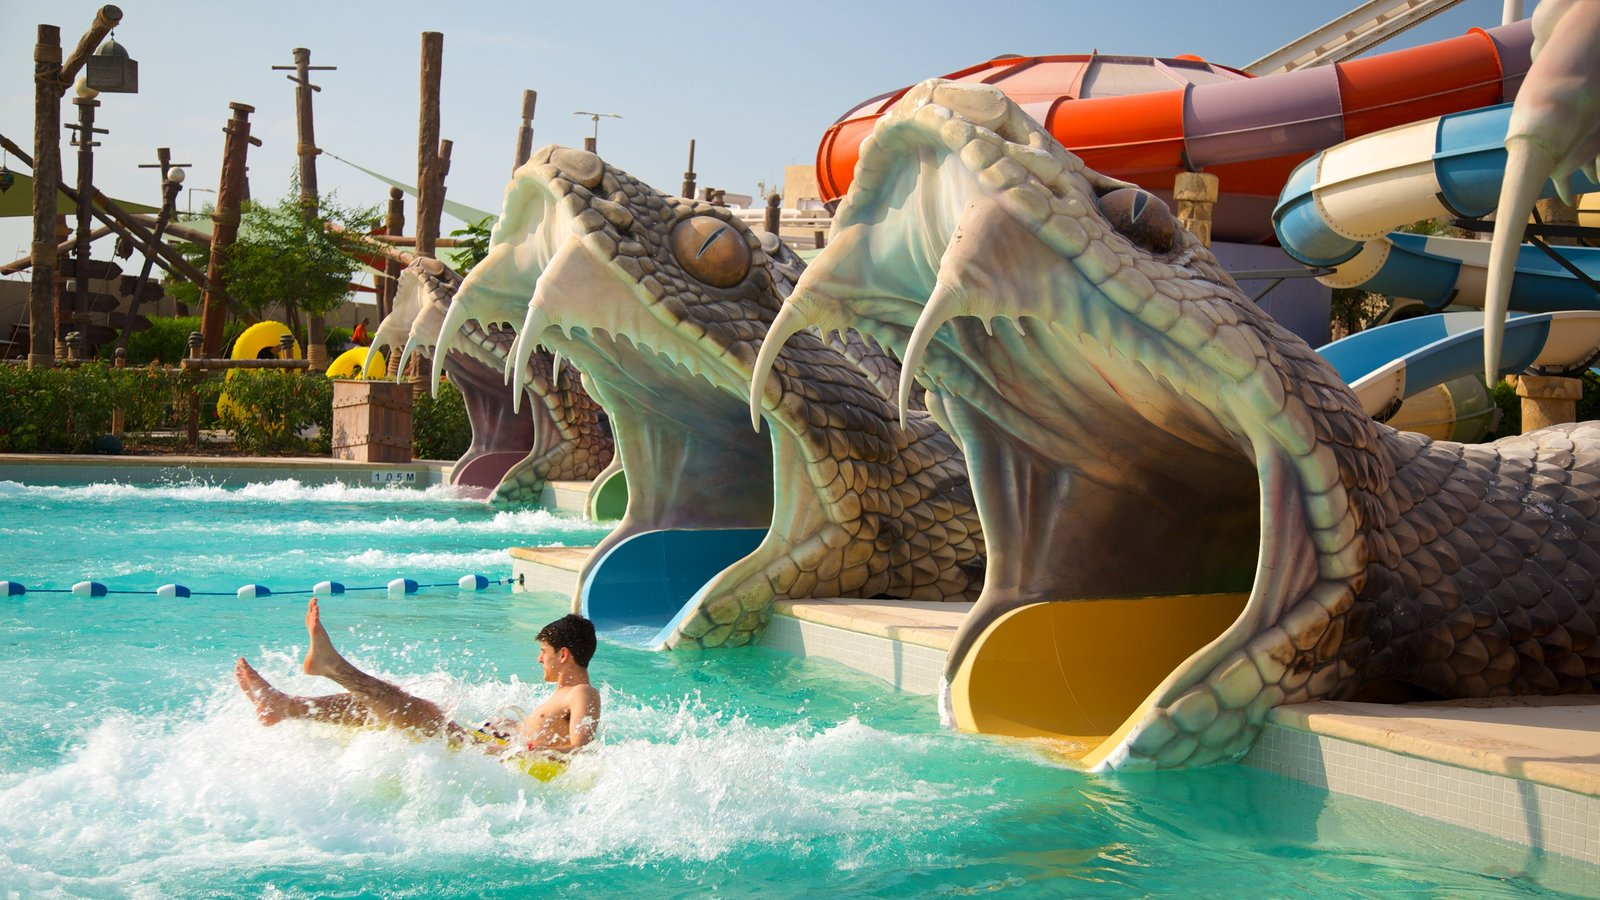 Yas Island showing a waterpark as well as an individual male